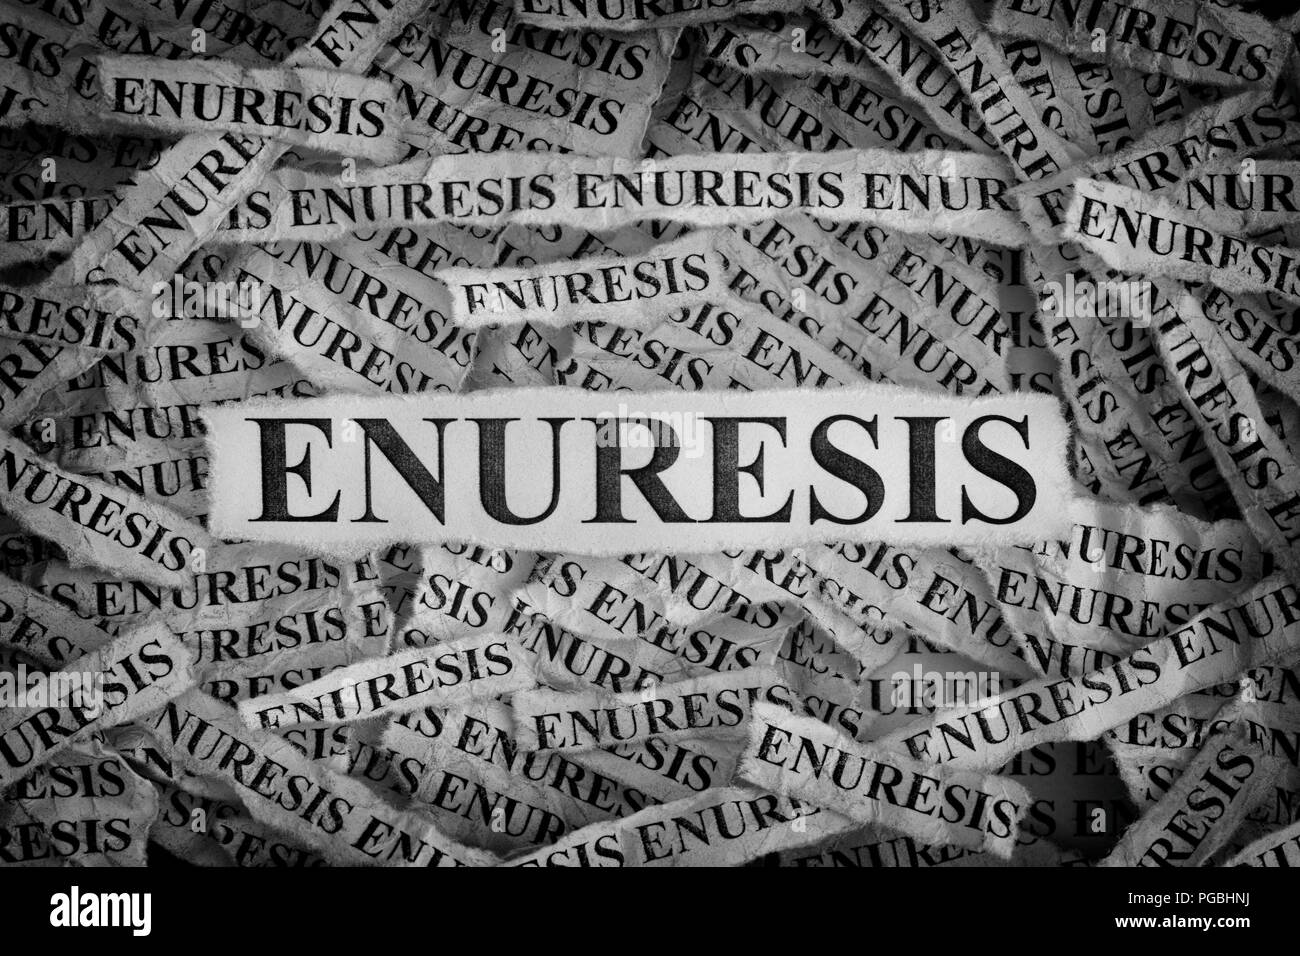 Enuresis. Torn pieces of paper with the words Enuresis. Concept Image. Black and White. Closeup. - Stock Image